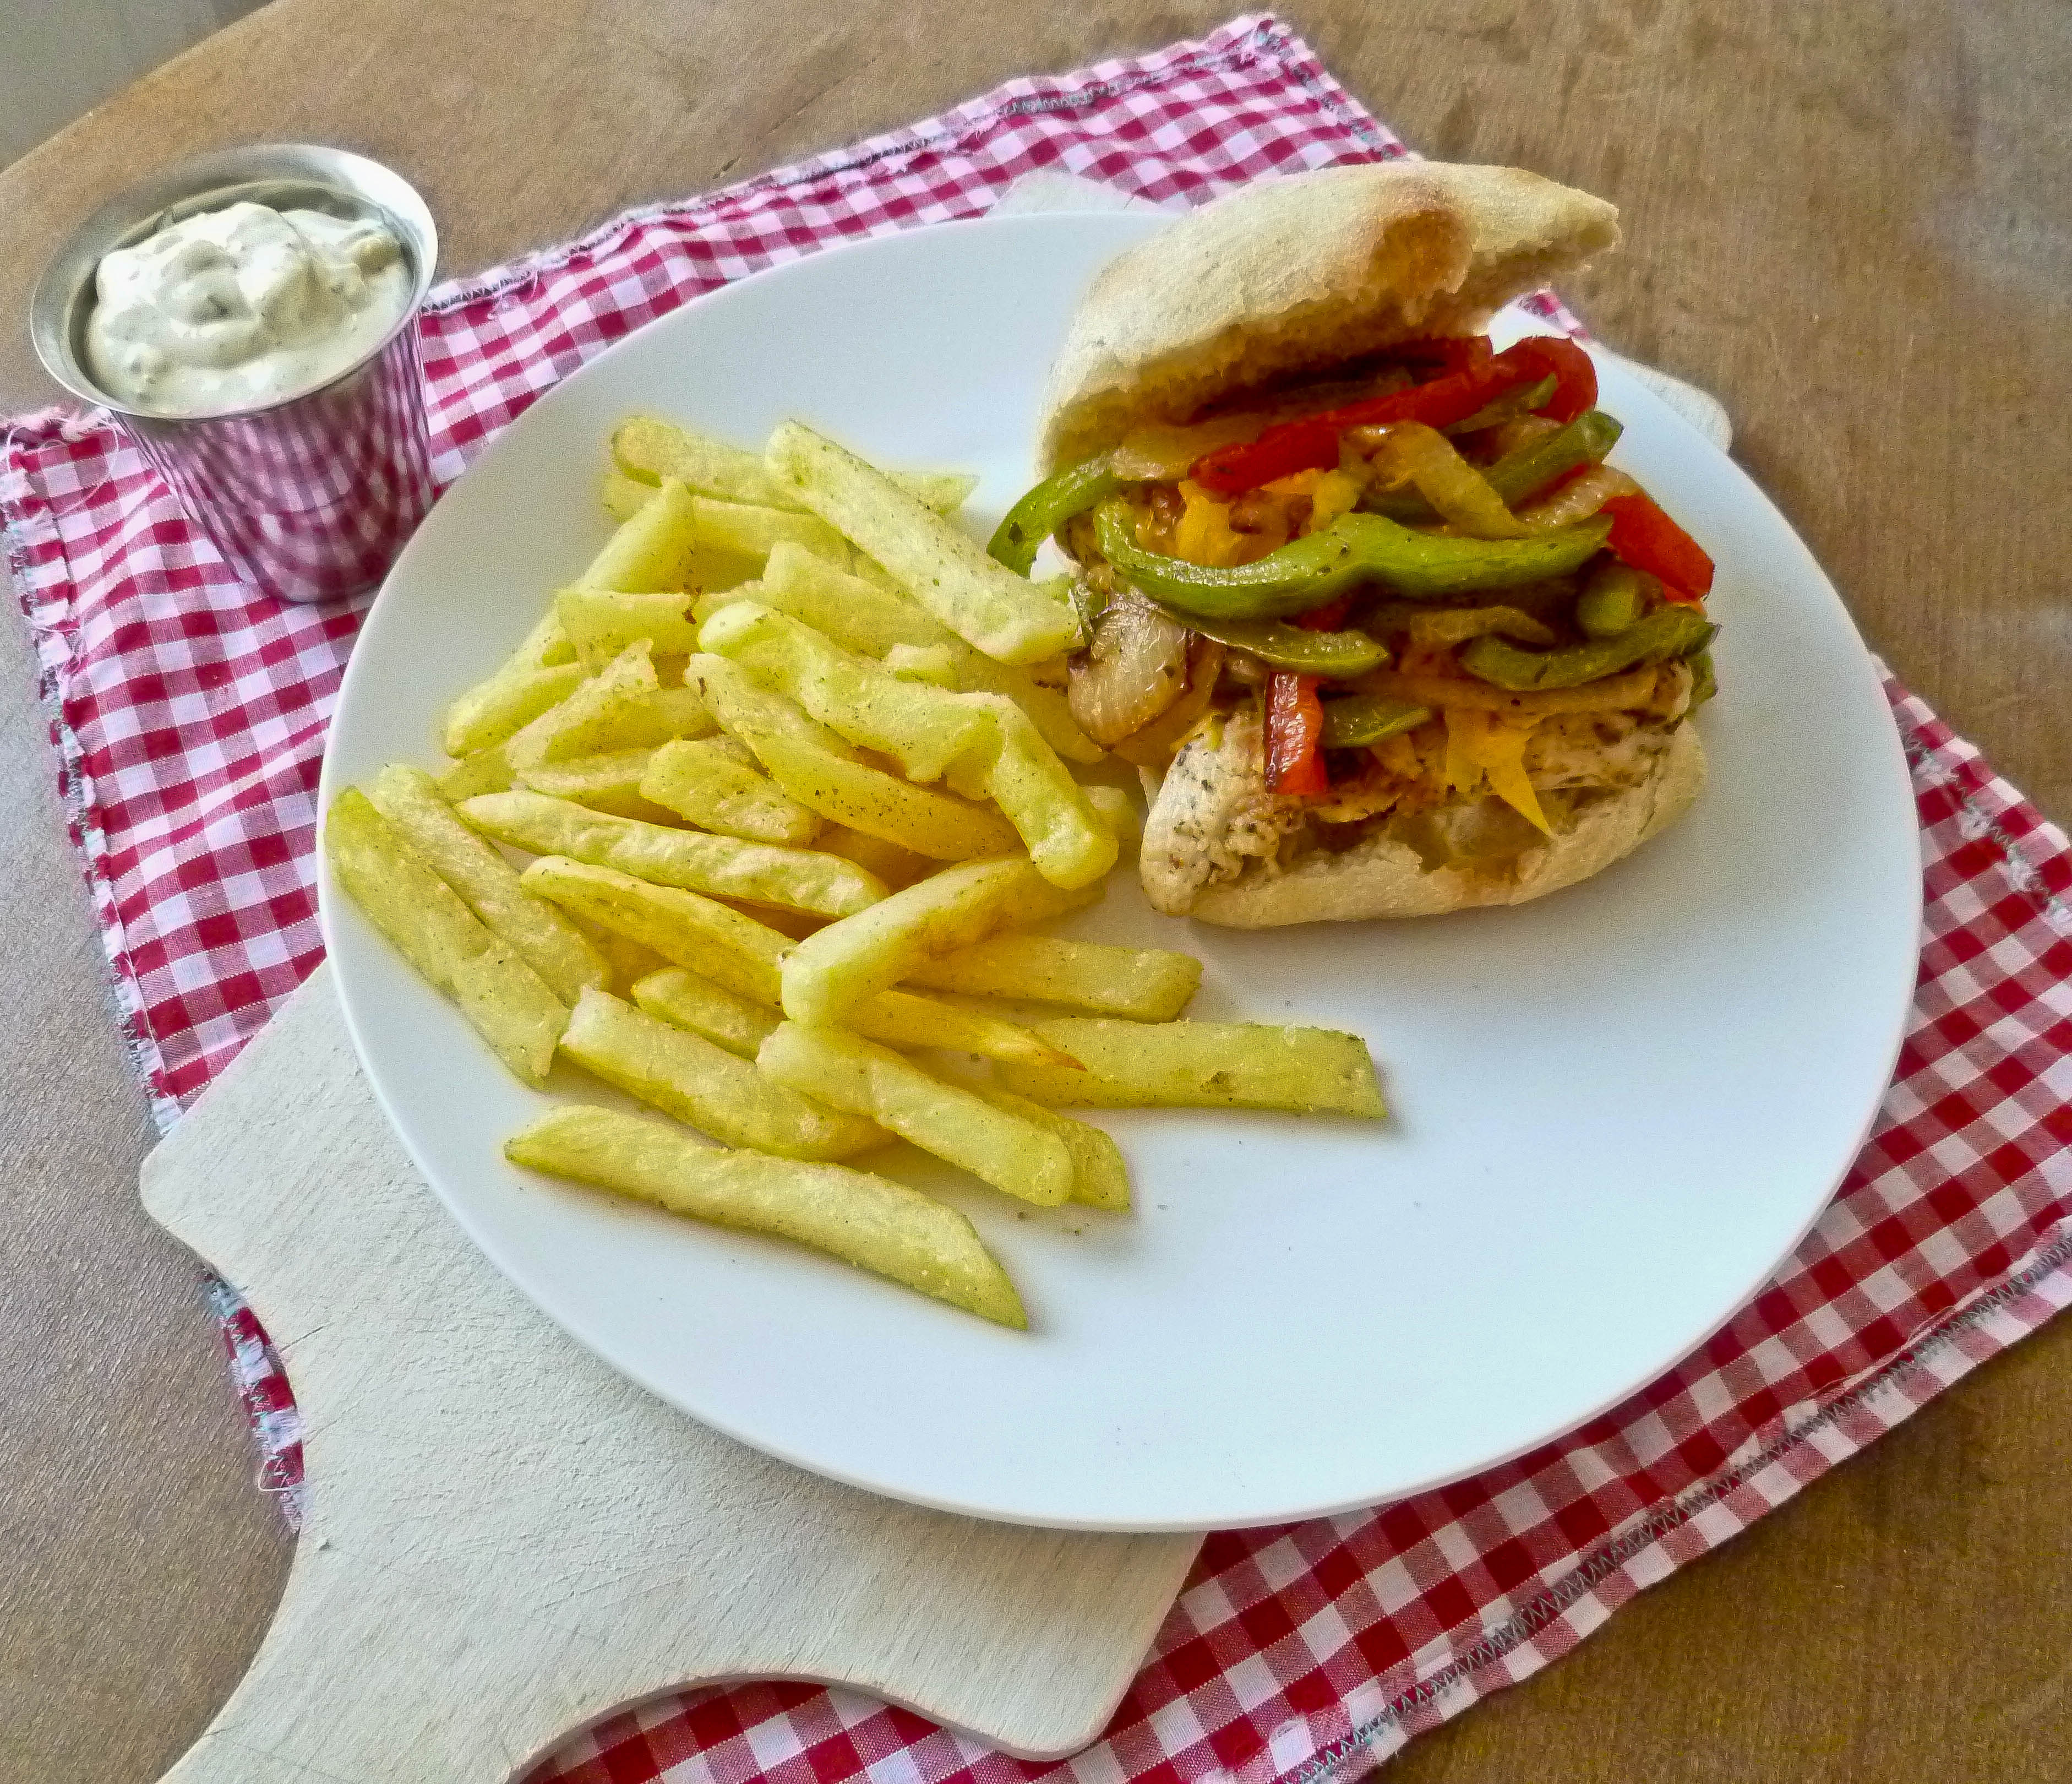 Cajun Chicken Sandwich with Peppers and Garlic Seasoned Fries